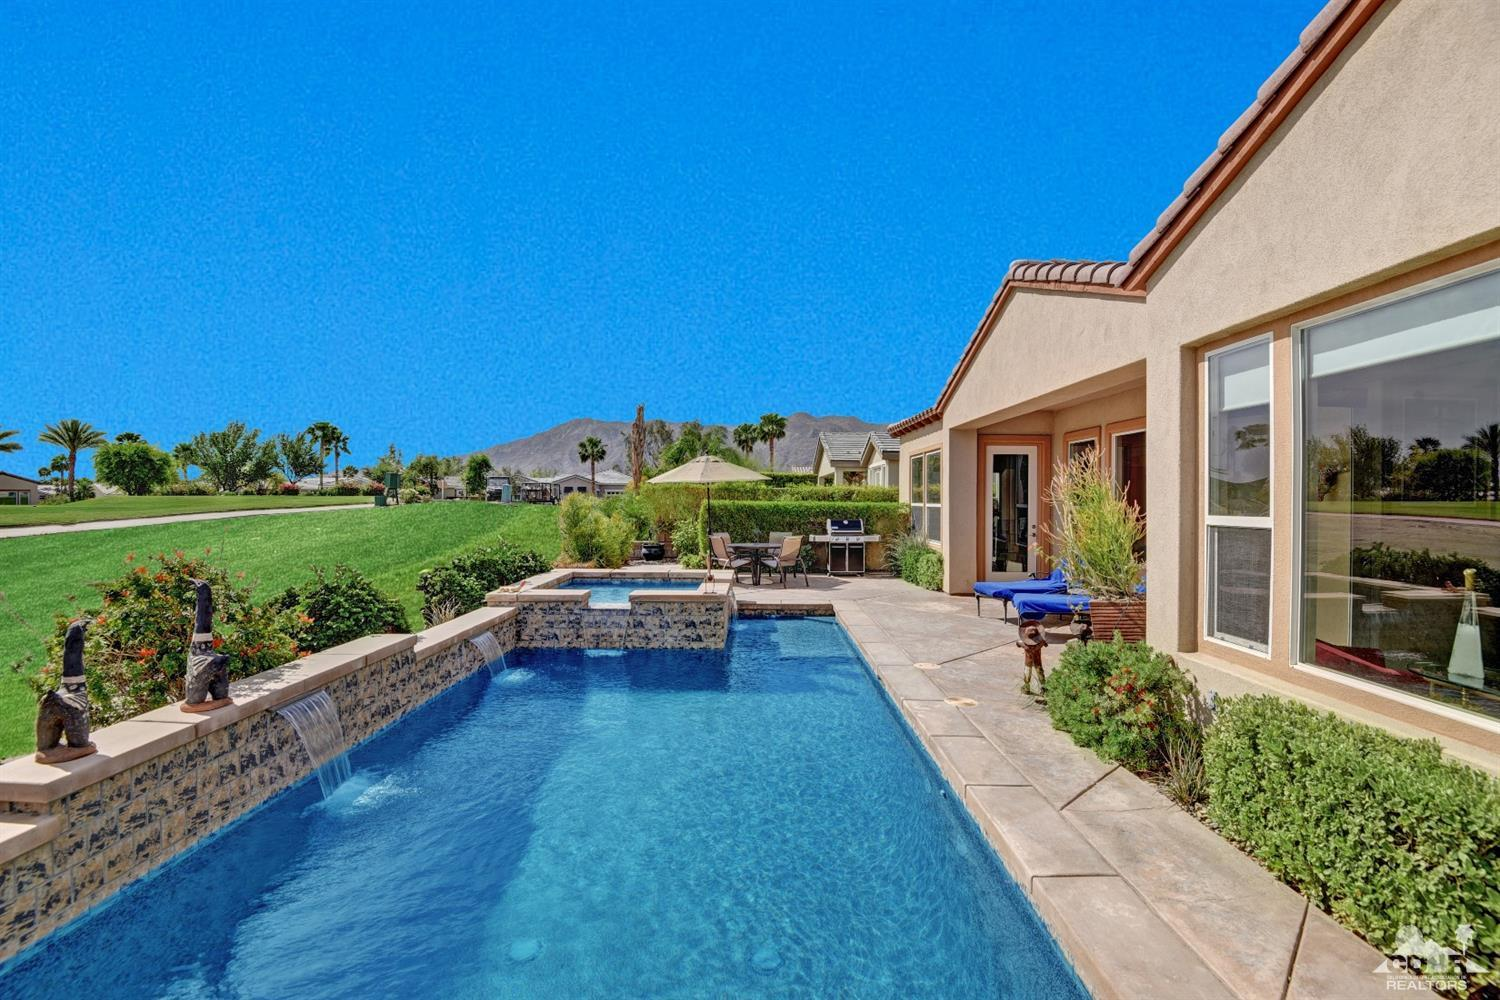 One of the best locations at Trilogy La Quinta, this Oreas model features 3BD/3BA, and pool/spa. Located on the t-box of the par 3 6th hole looking across the lagoon toward the clubhouse complex. The entry features a double-sided fireplace. Master suite features an office. Gourmet kitchen features granite counters, upgraded cabinets, and stainless appliances. Large windows allow for views to be appreciated both inside and out. Furnishings and art negotiable.